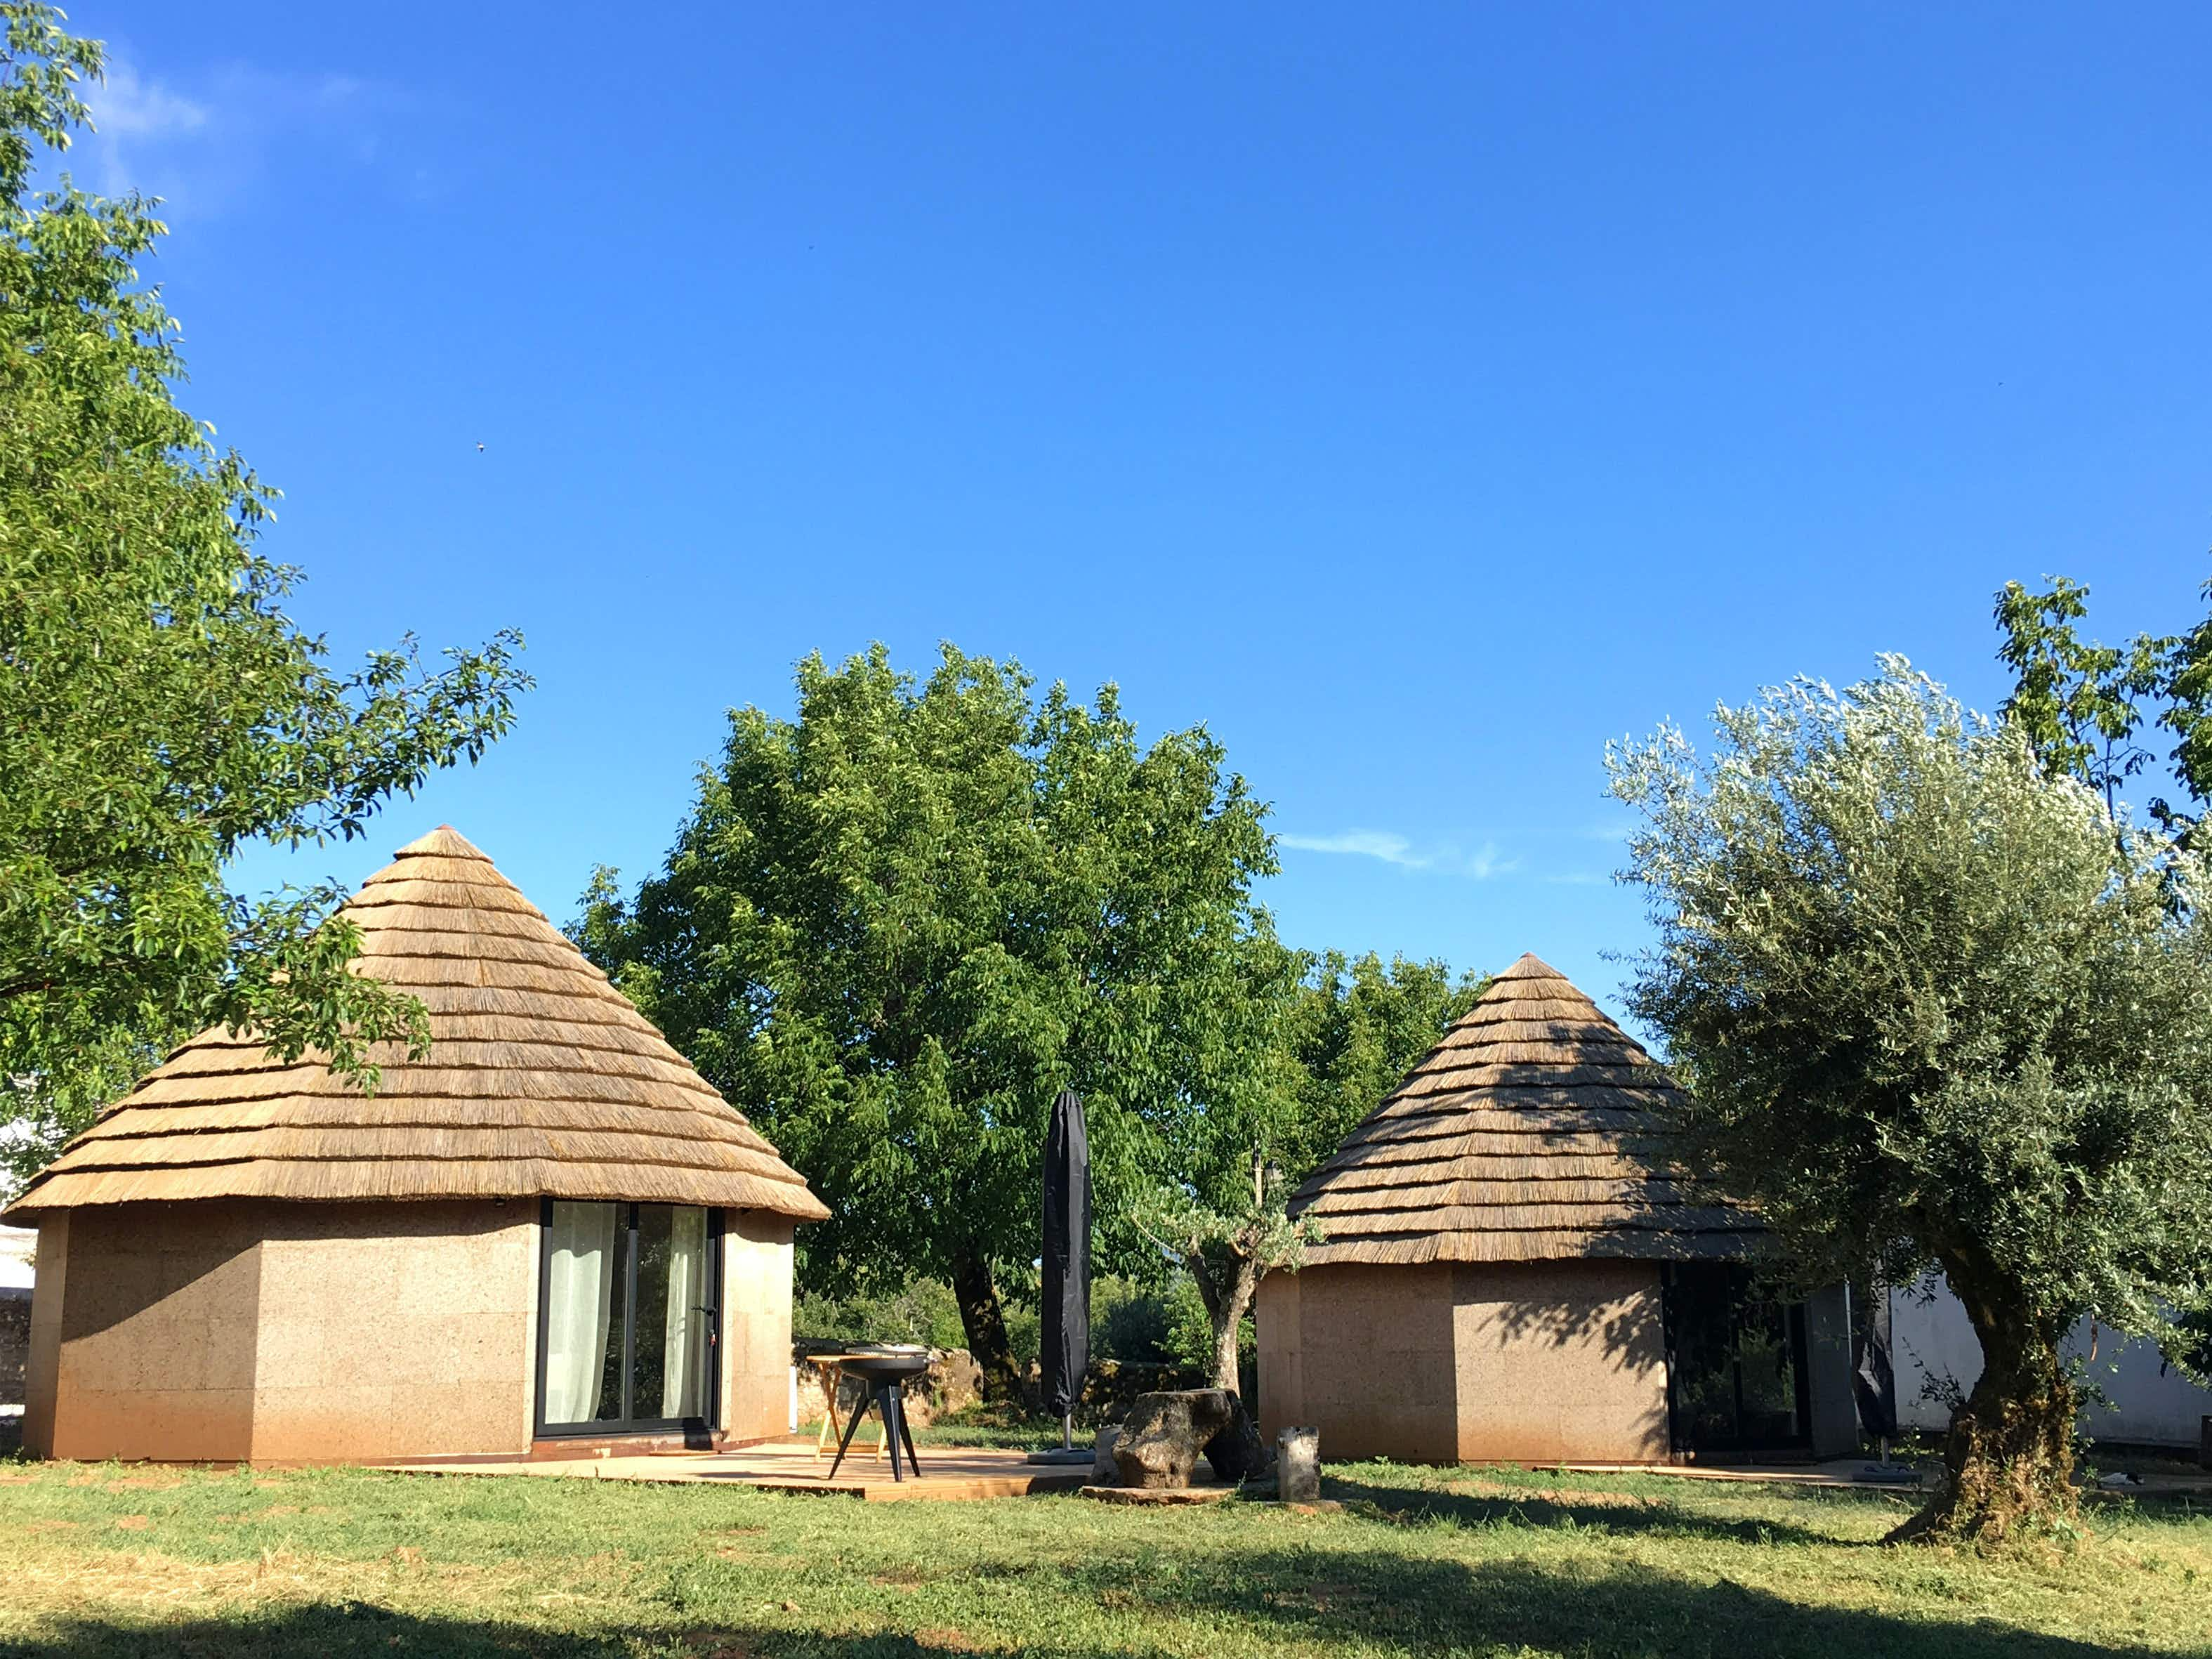 Check out Portugal's new eco-glamping accommodation in Alentejo this summer